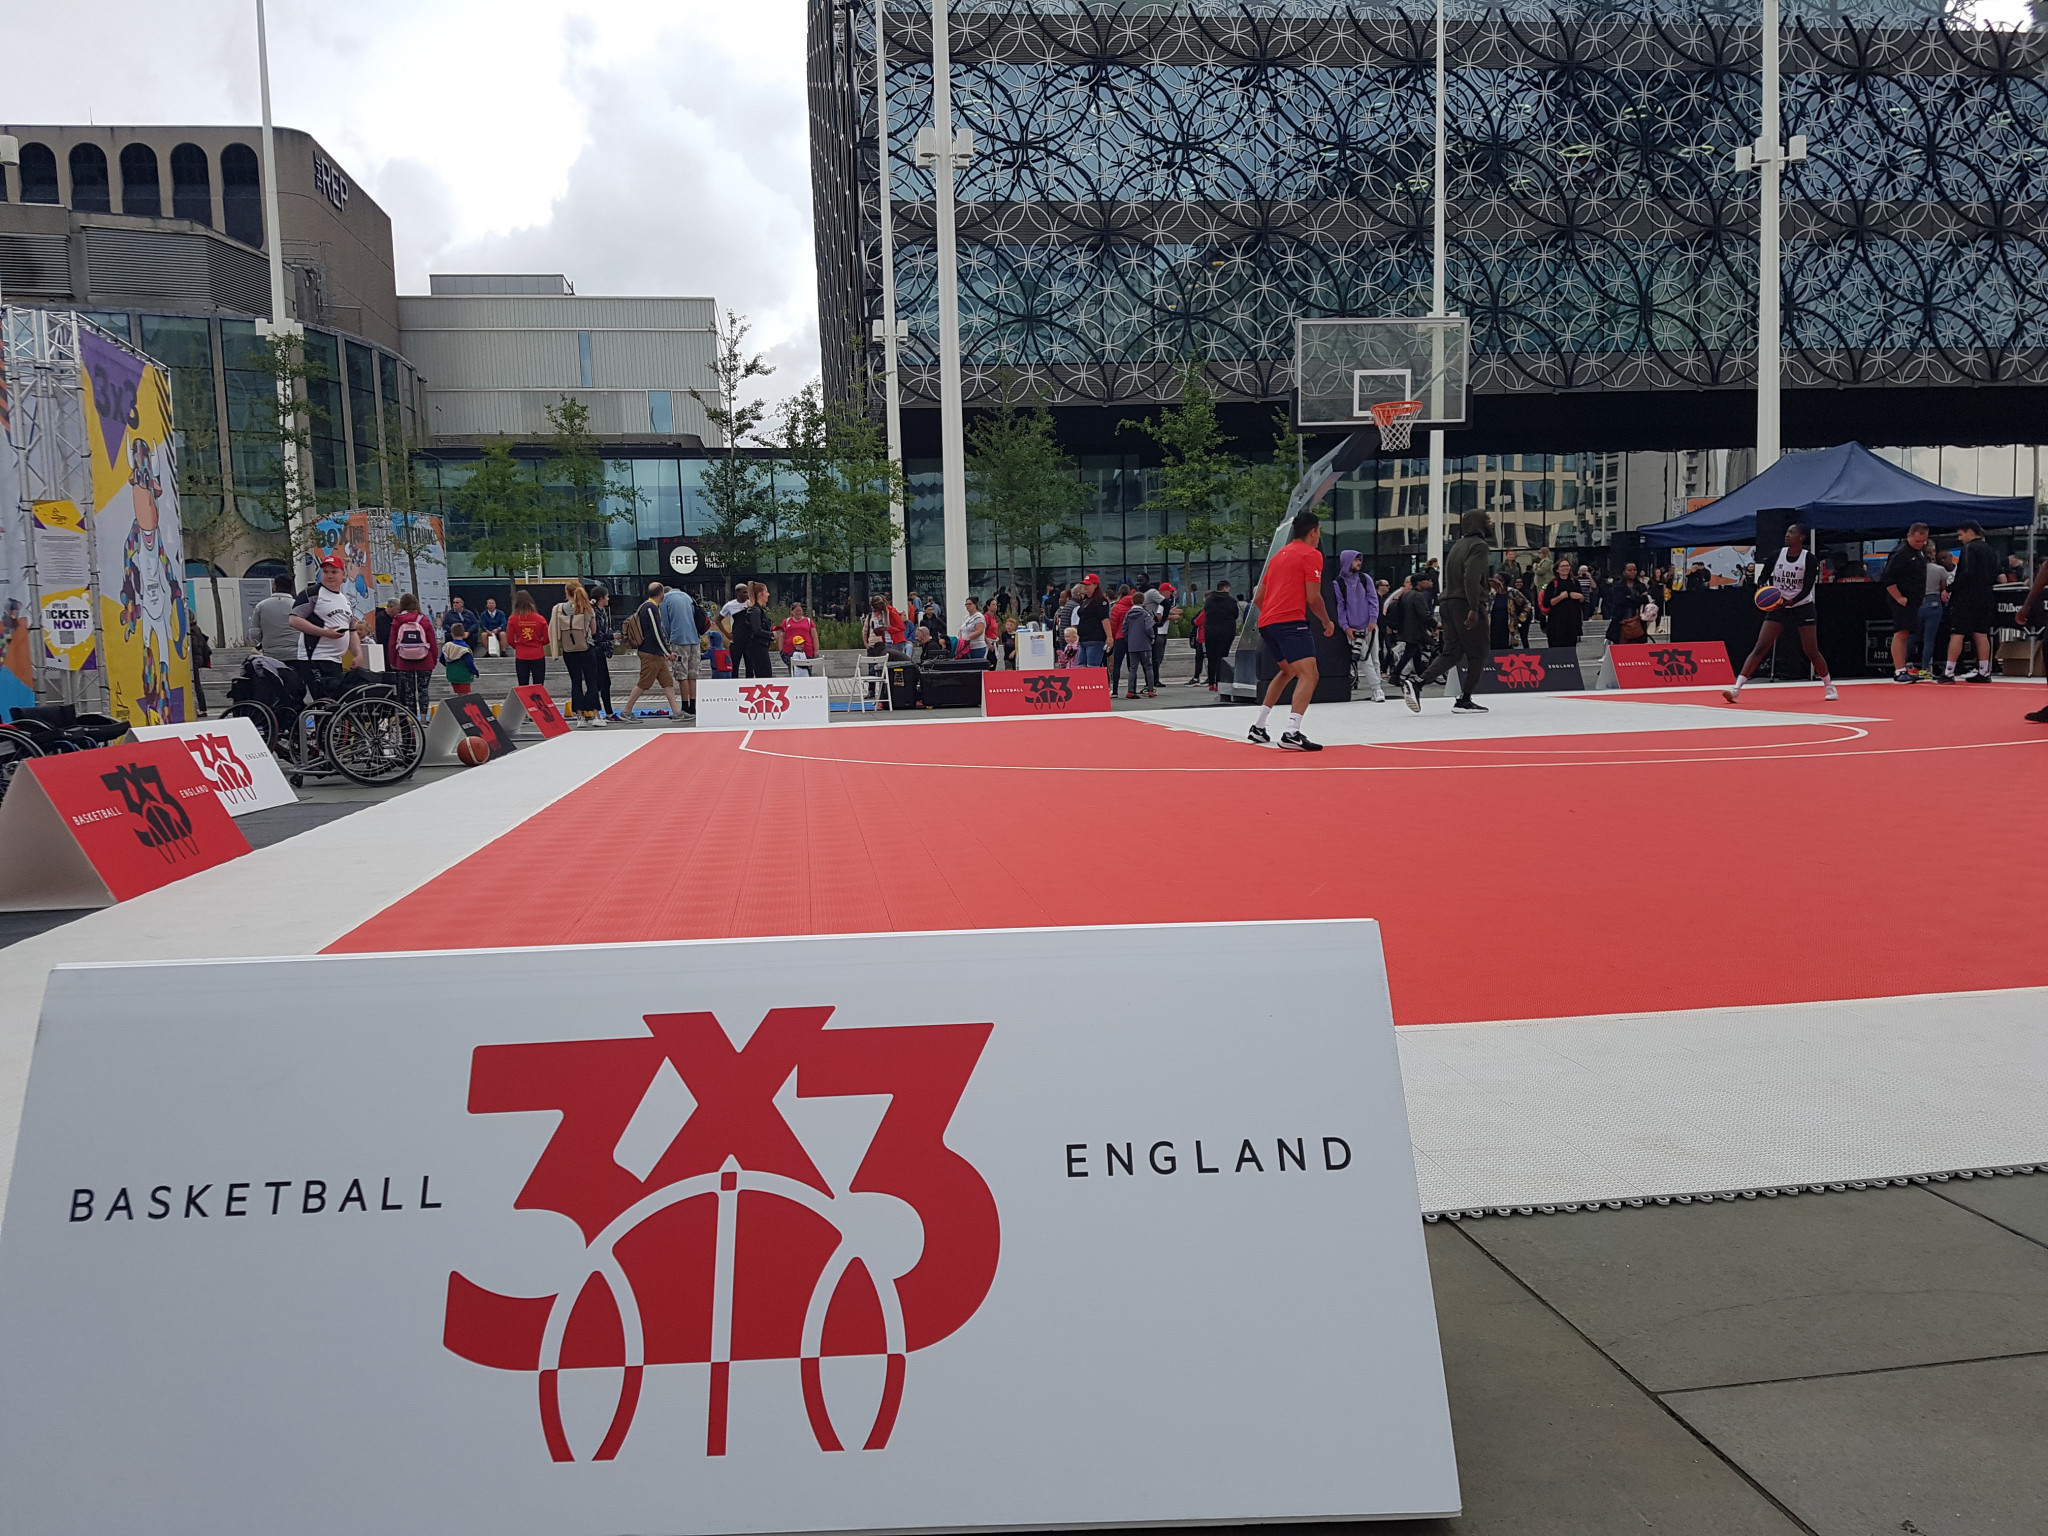 3x3 basketball was one of the most popular events at the festival, with locals able to try the sport before its Olympic debut ©ITG